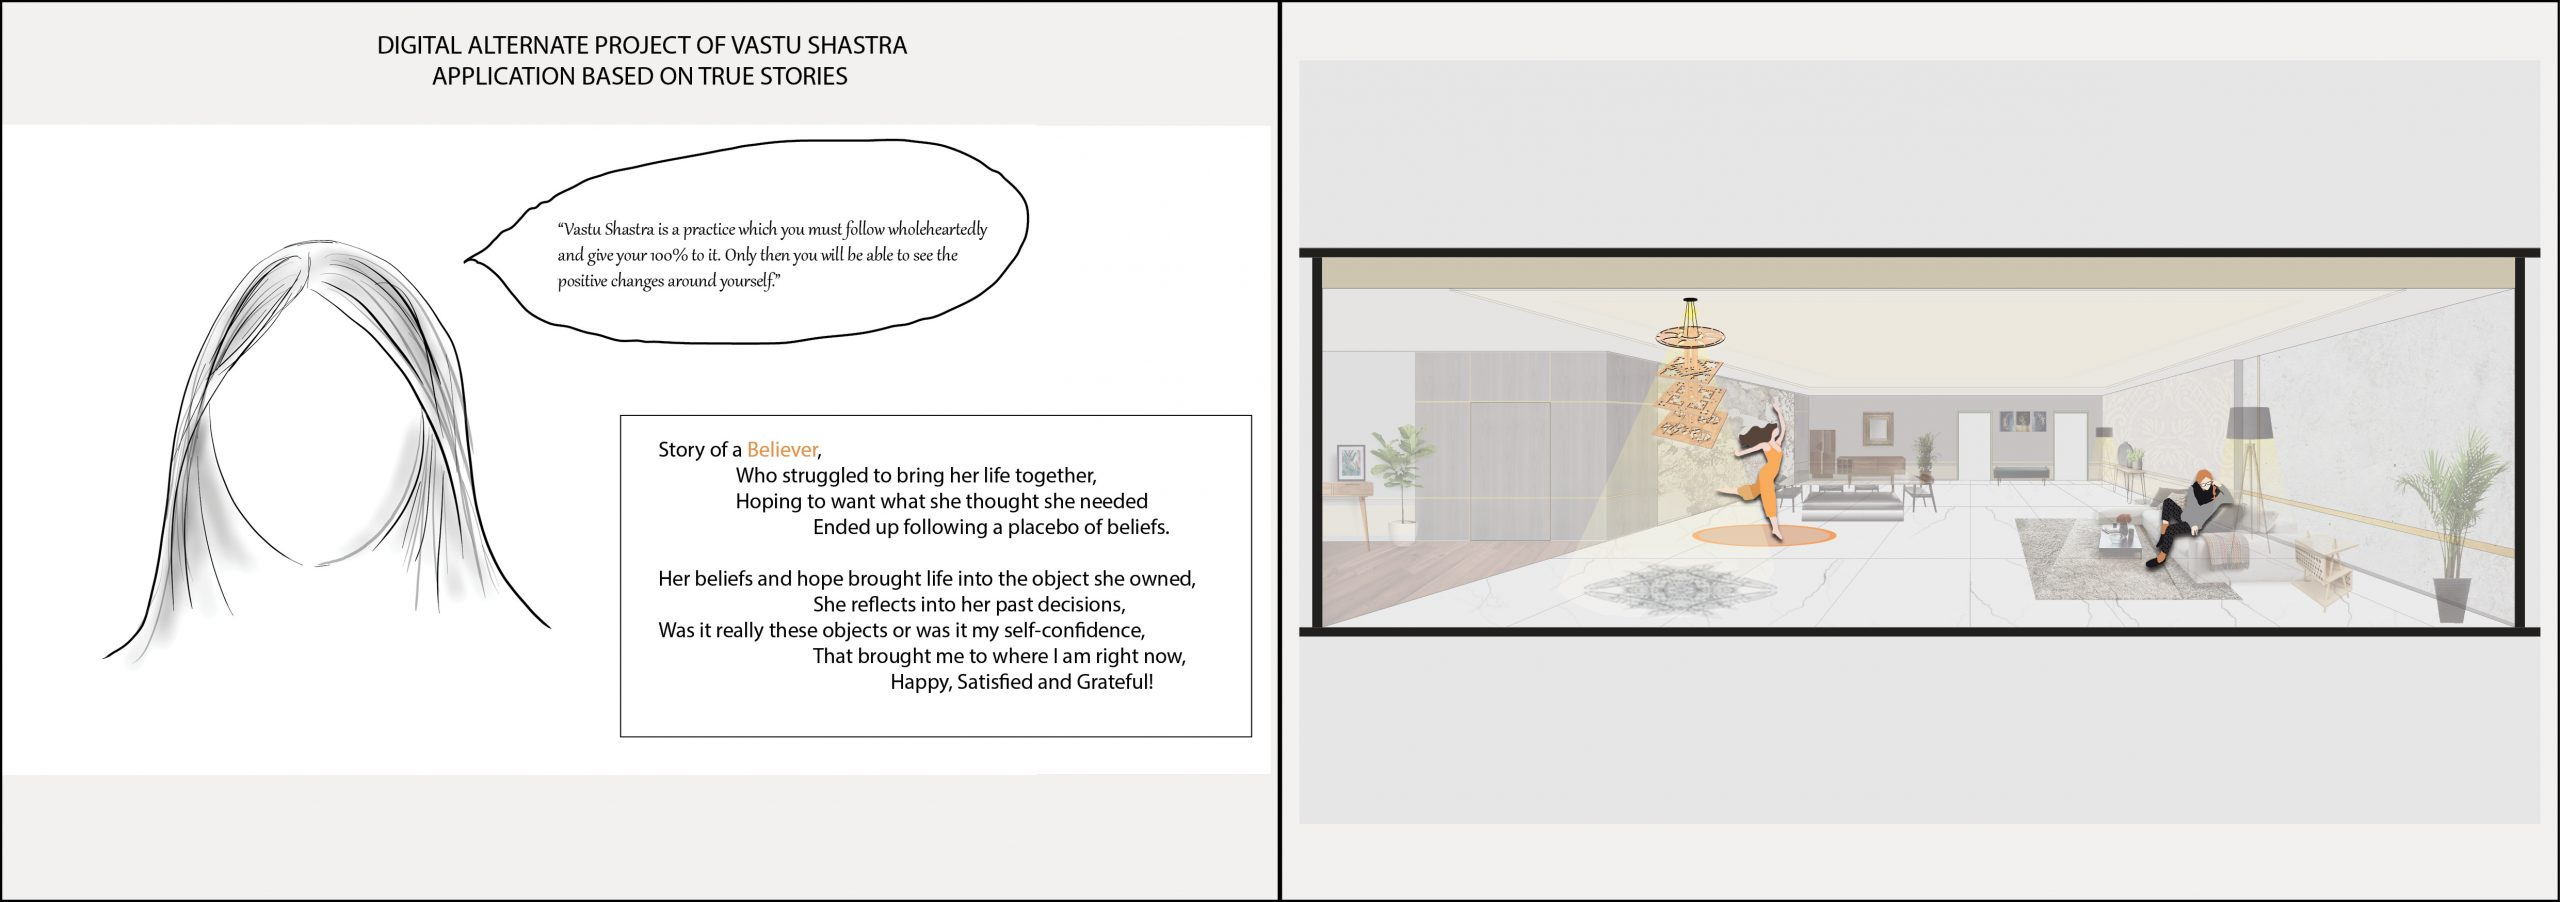 Krina Shailesh Mehta - Digital Drawing Vastu Shastra Implementation